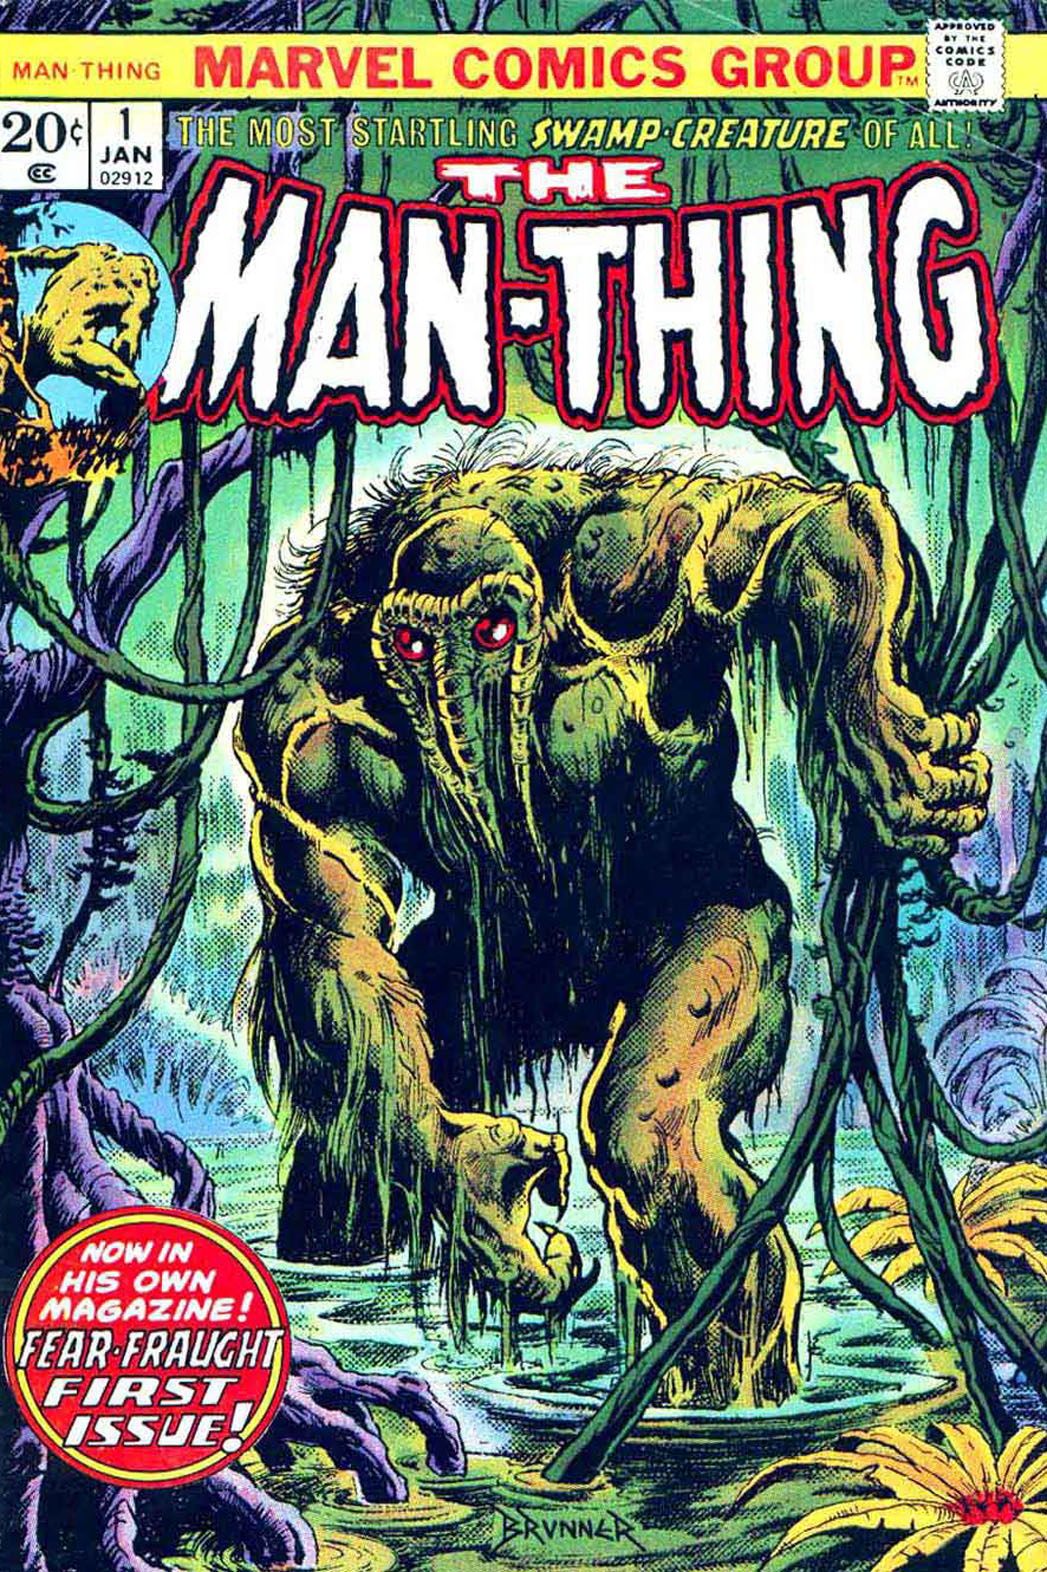 The Man Thing Comic - P 2013